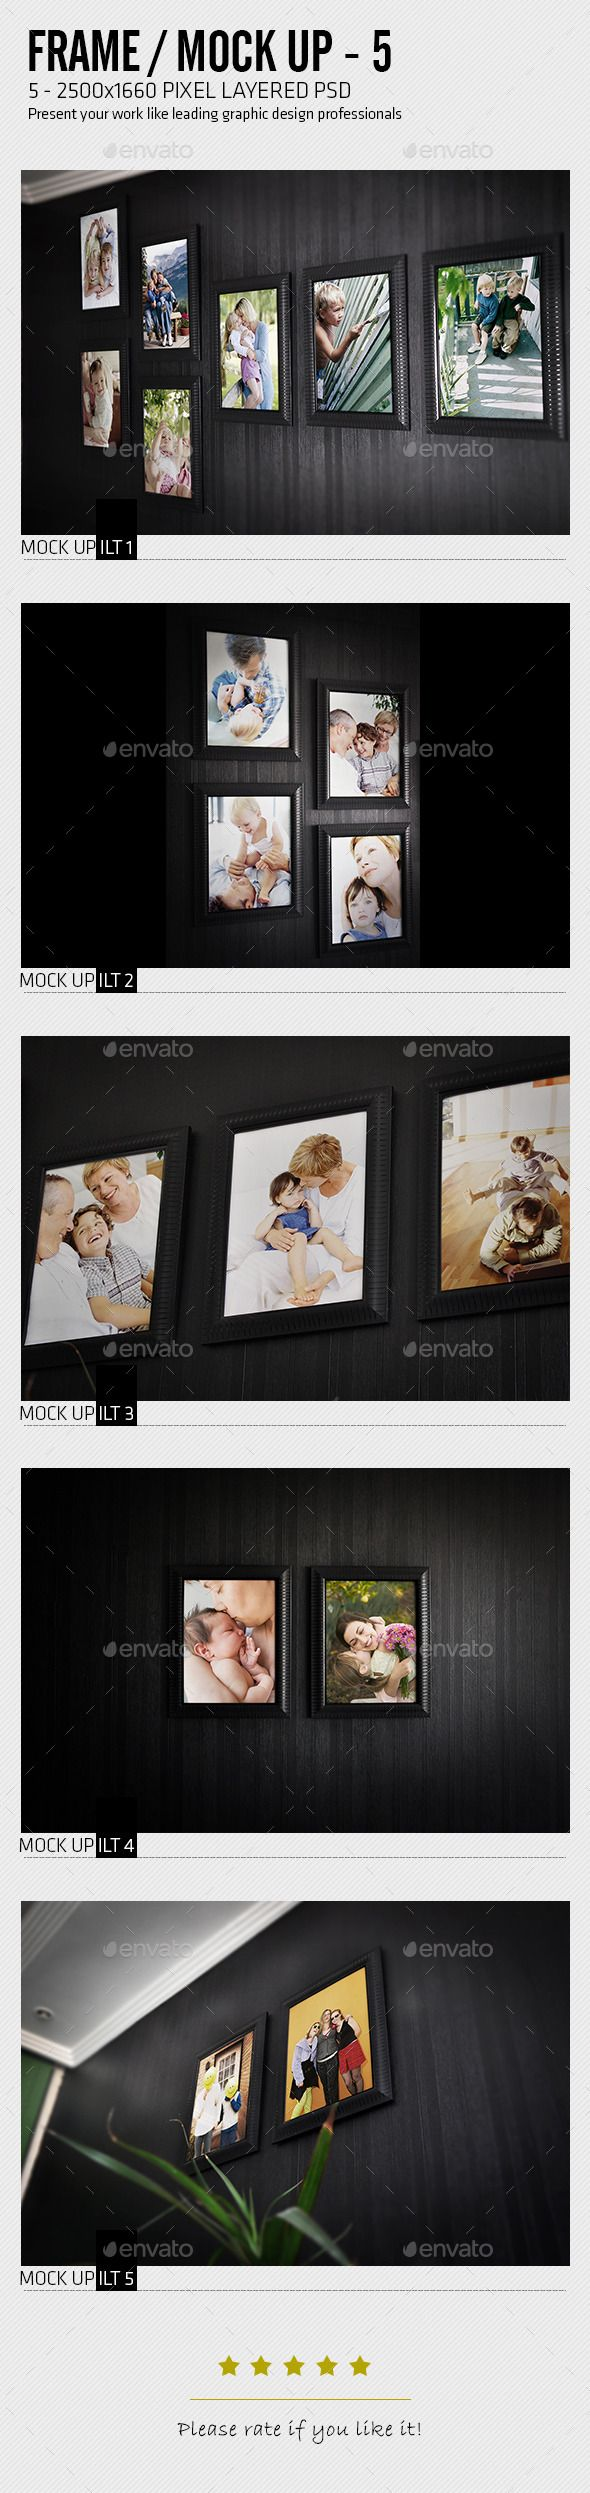 Picture Frame Mock-Up  depth of field, elegant, frame, mock up, mock-up, mock-up template, mockup, modern, photo, photo frame, photo mock up, photo-realistic, picture, poster, present, presentation, realism, realistic, render, showcase, template, three-dimensional